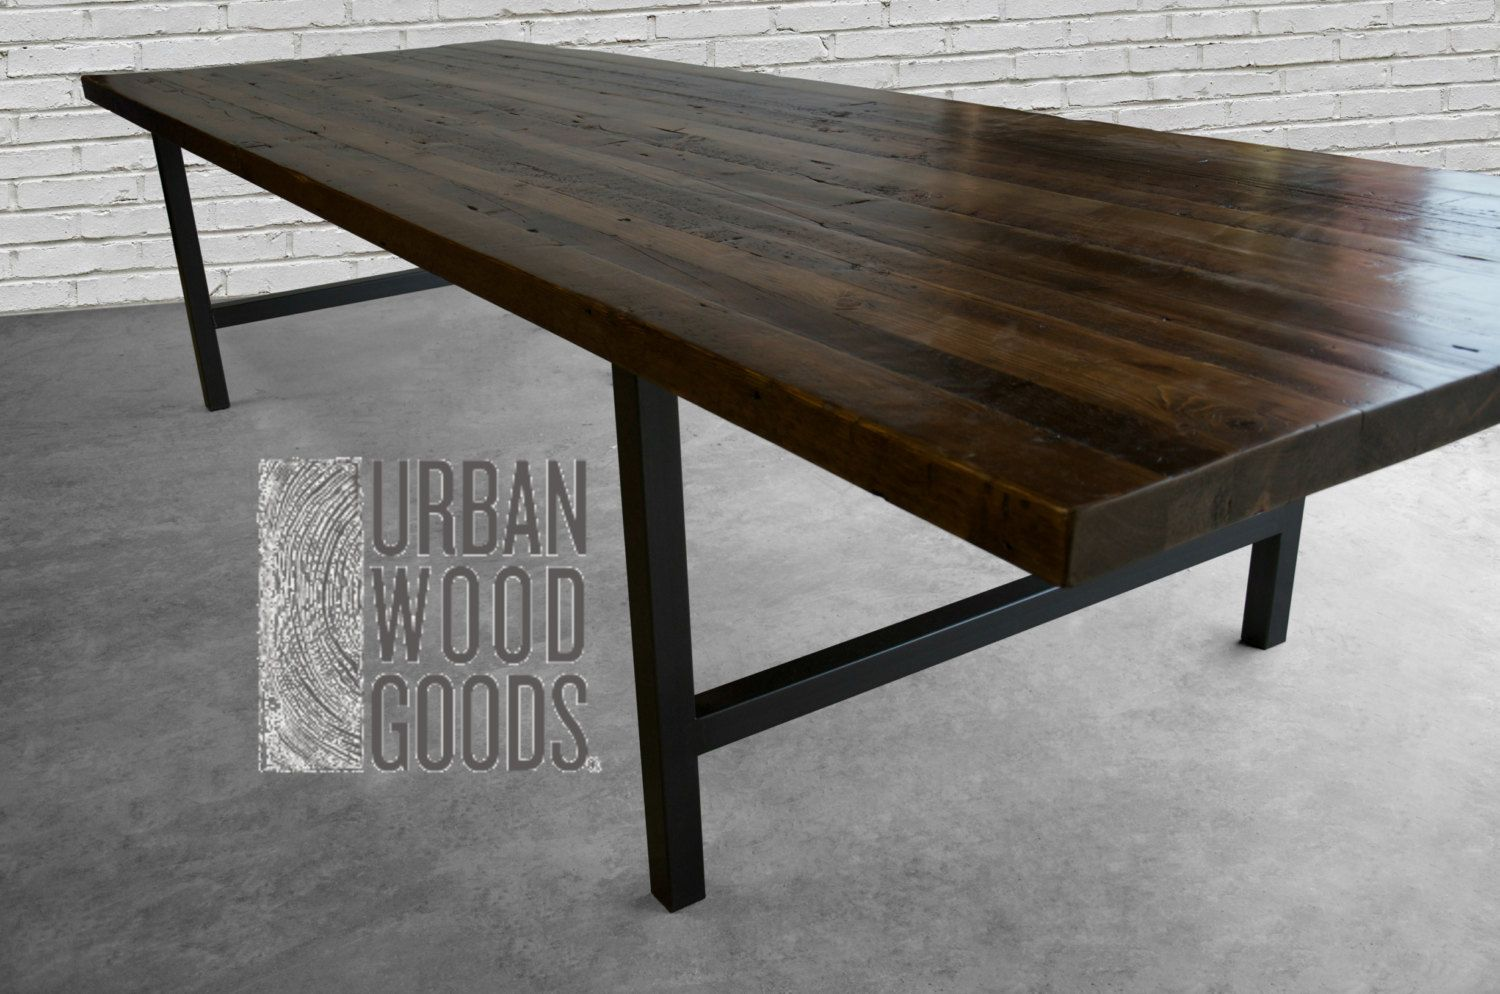 Large Modern Wood Dining Table Made Of 2 5 Inch Thick Reclaimed Wood And Steel Legs In Your Choice Of Color Size And Finish Reclaimed Wood Furniture Large Dining Table Wood Conference Table